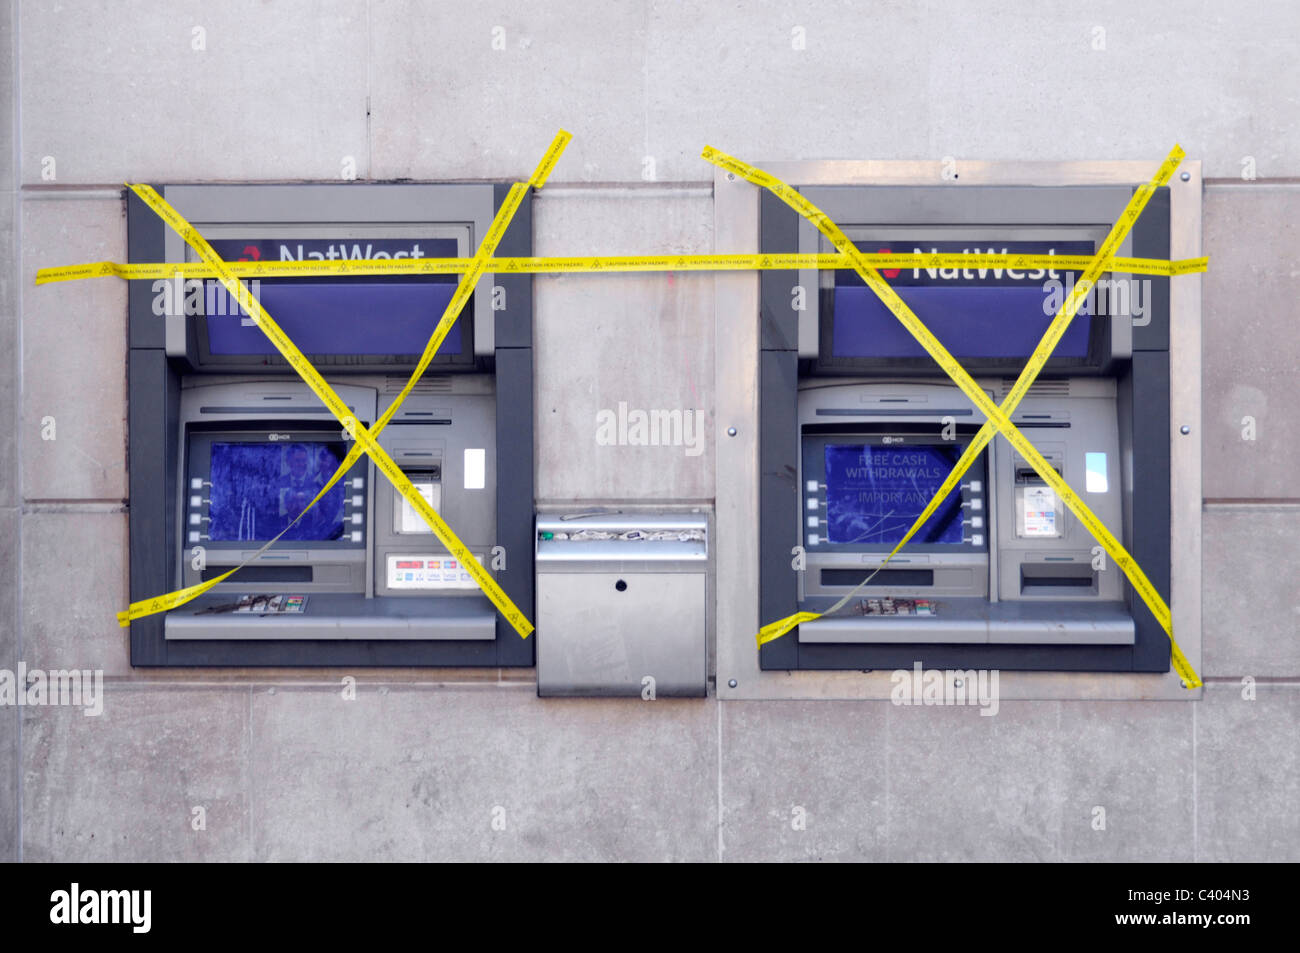 Admirable Atm Out Of Order Stock Photos Atm Out Of Order Stock Images Alamy Wiring Cloud Tziciuggs Outletorg